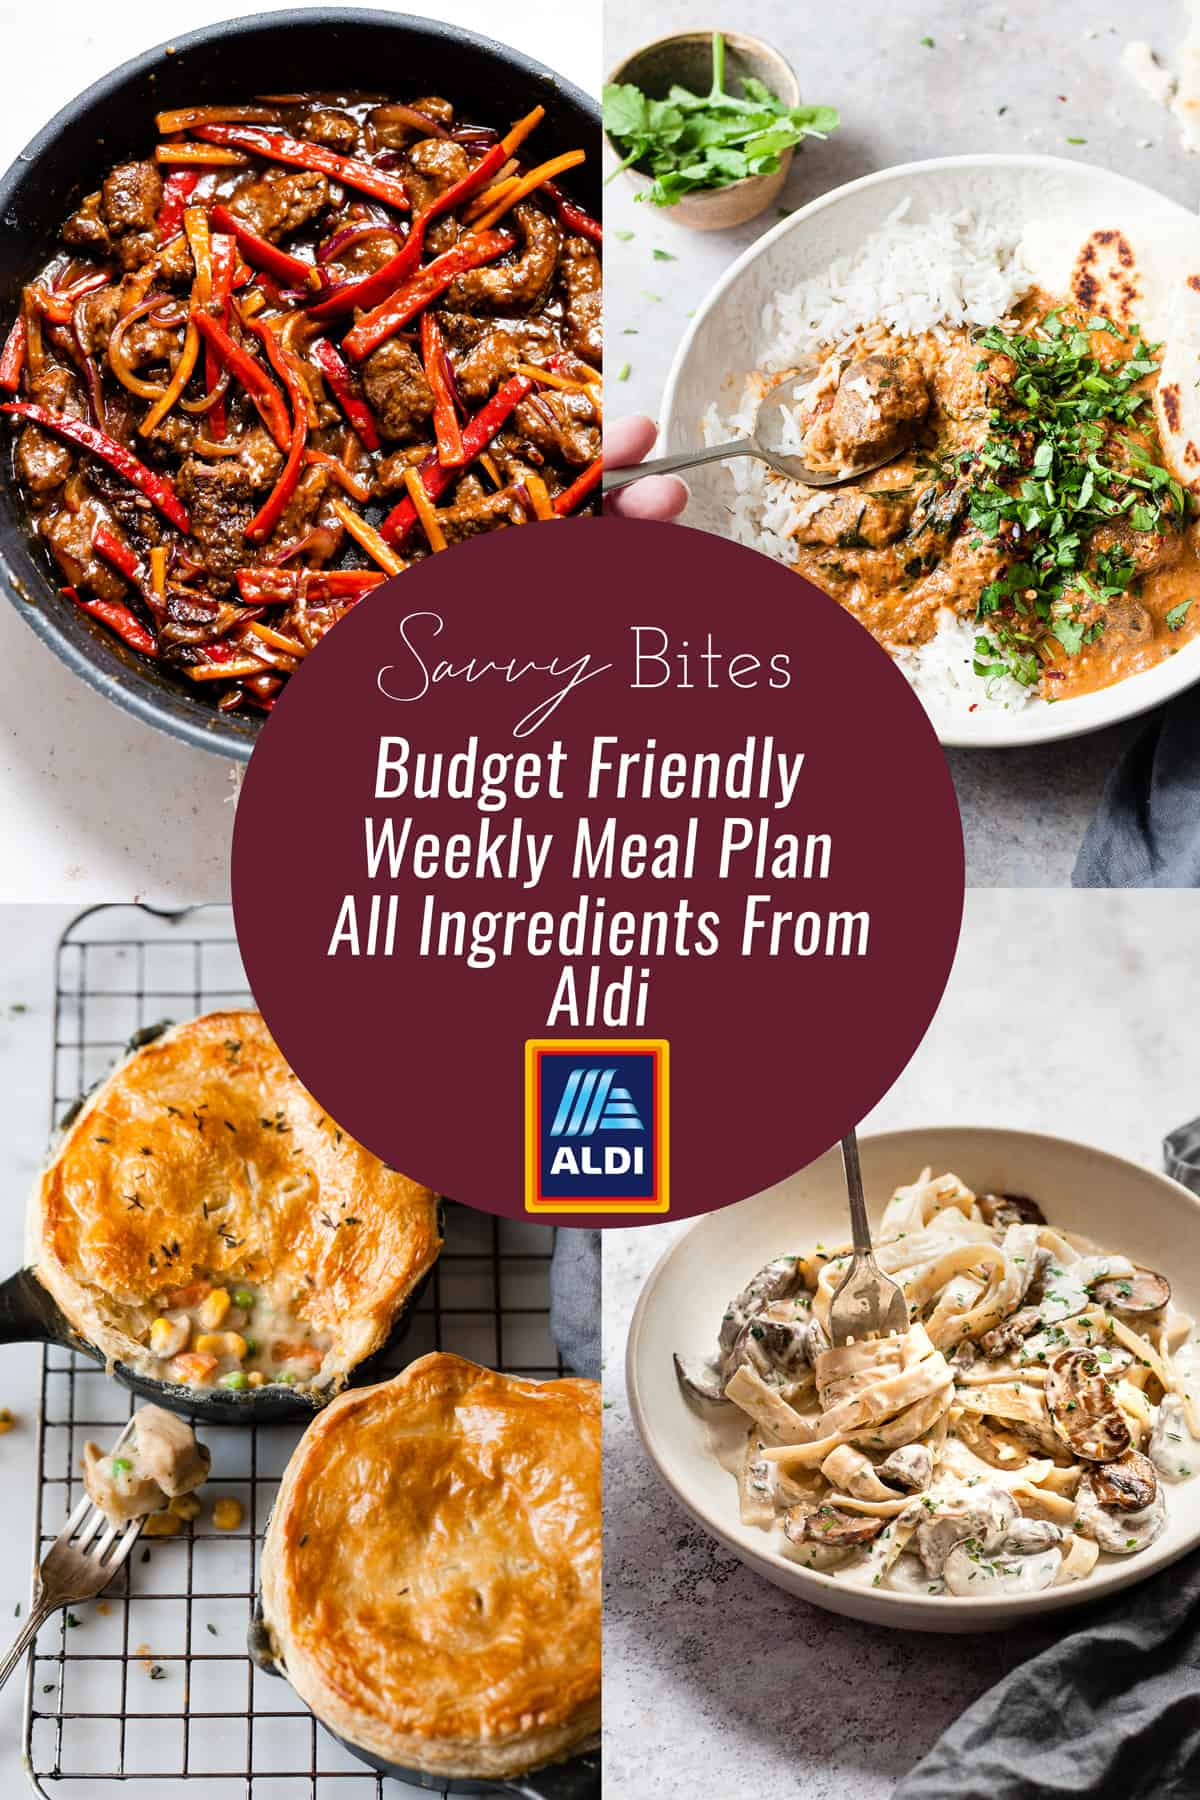 Healthy meal plan for the week